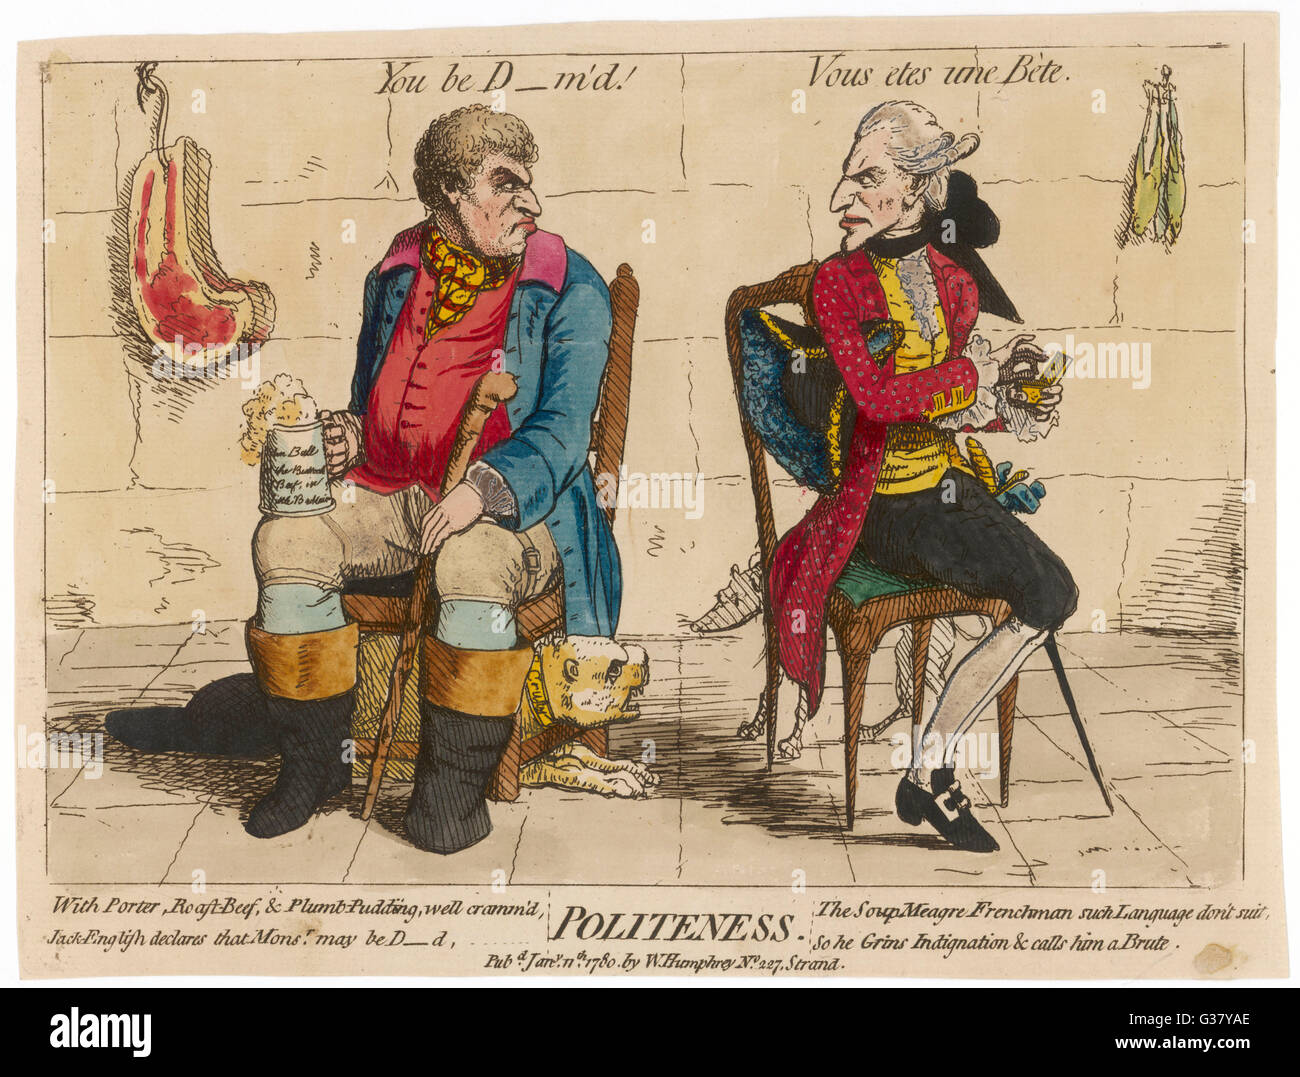 John Bull (first known representation) with his French counterpart. - Stock Image